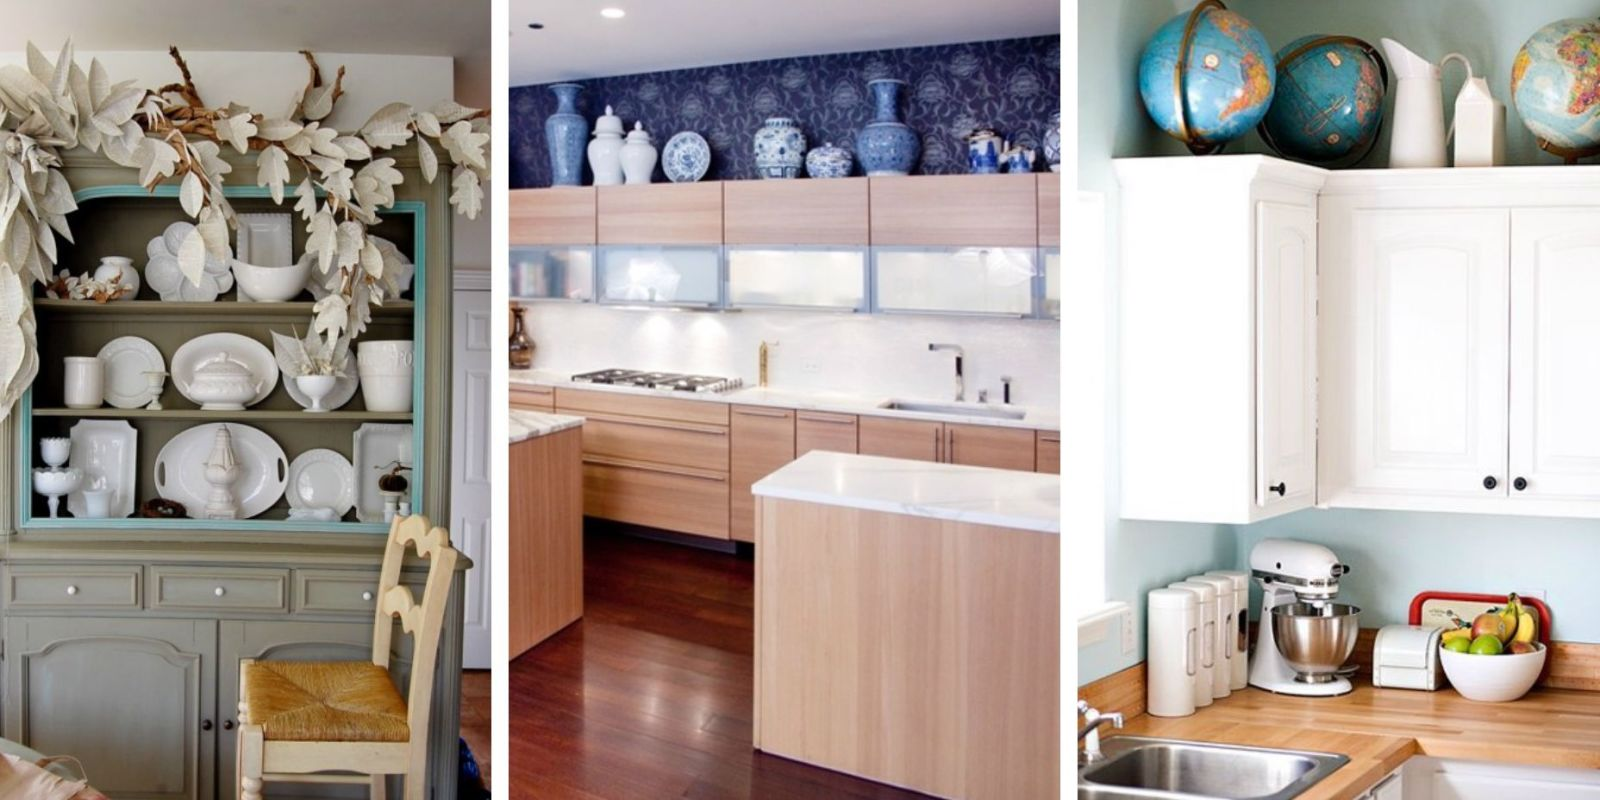 Design ideas for the space above kitchen cabinets for Ideas for things to put on top of kitchen cabinets